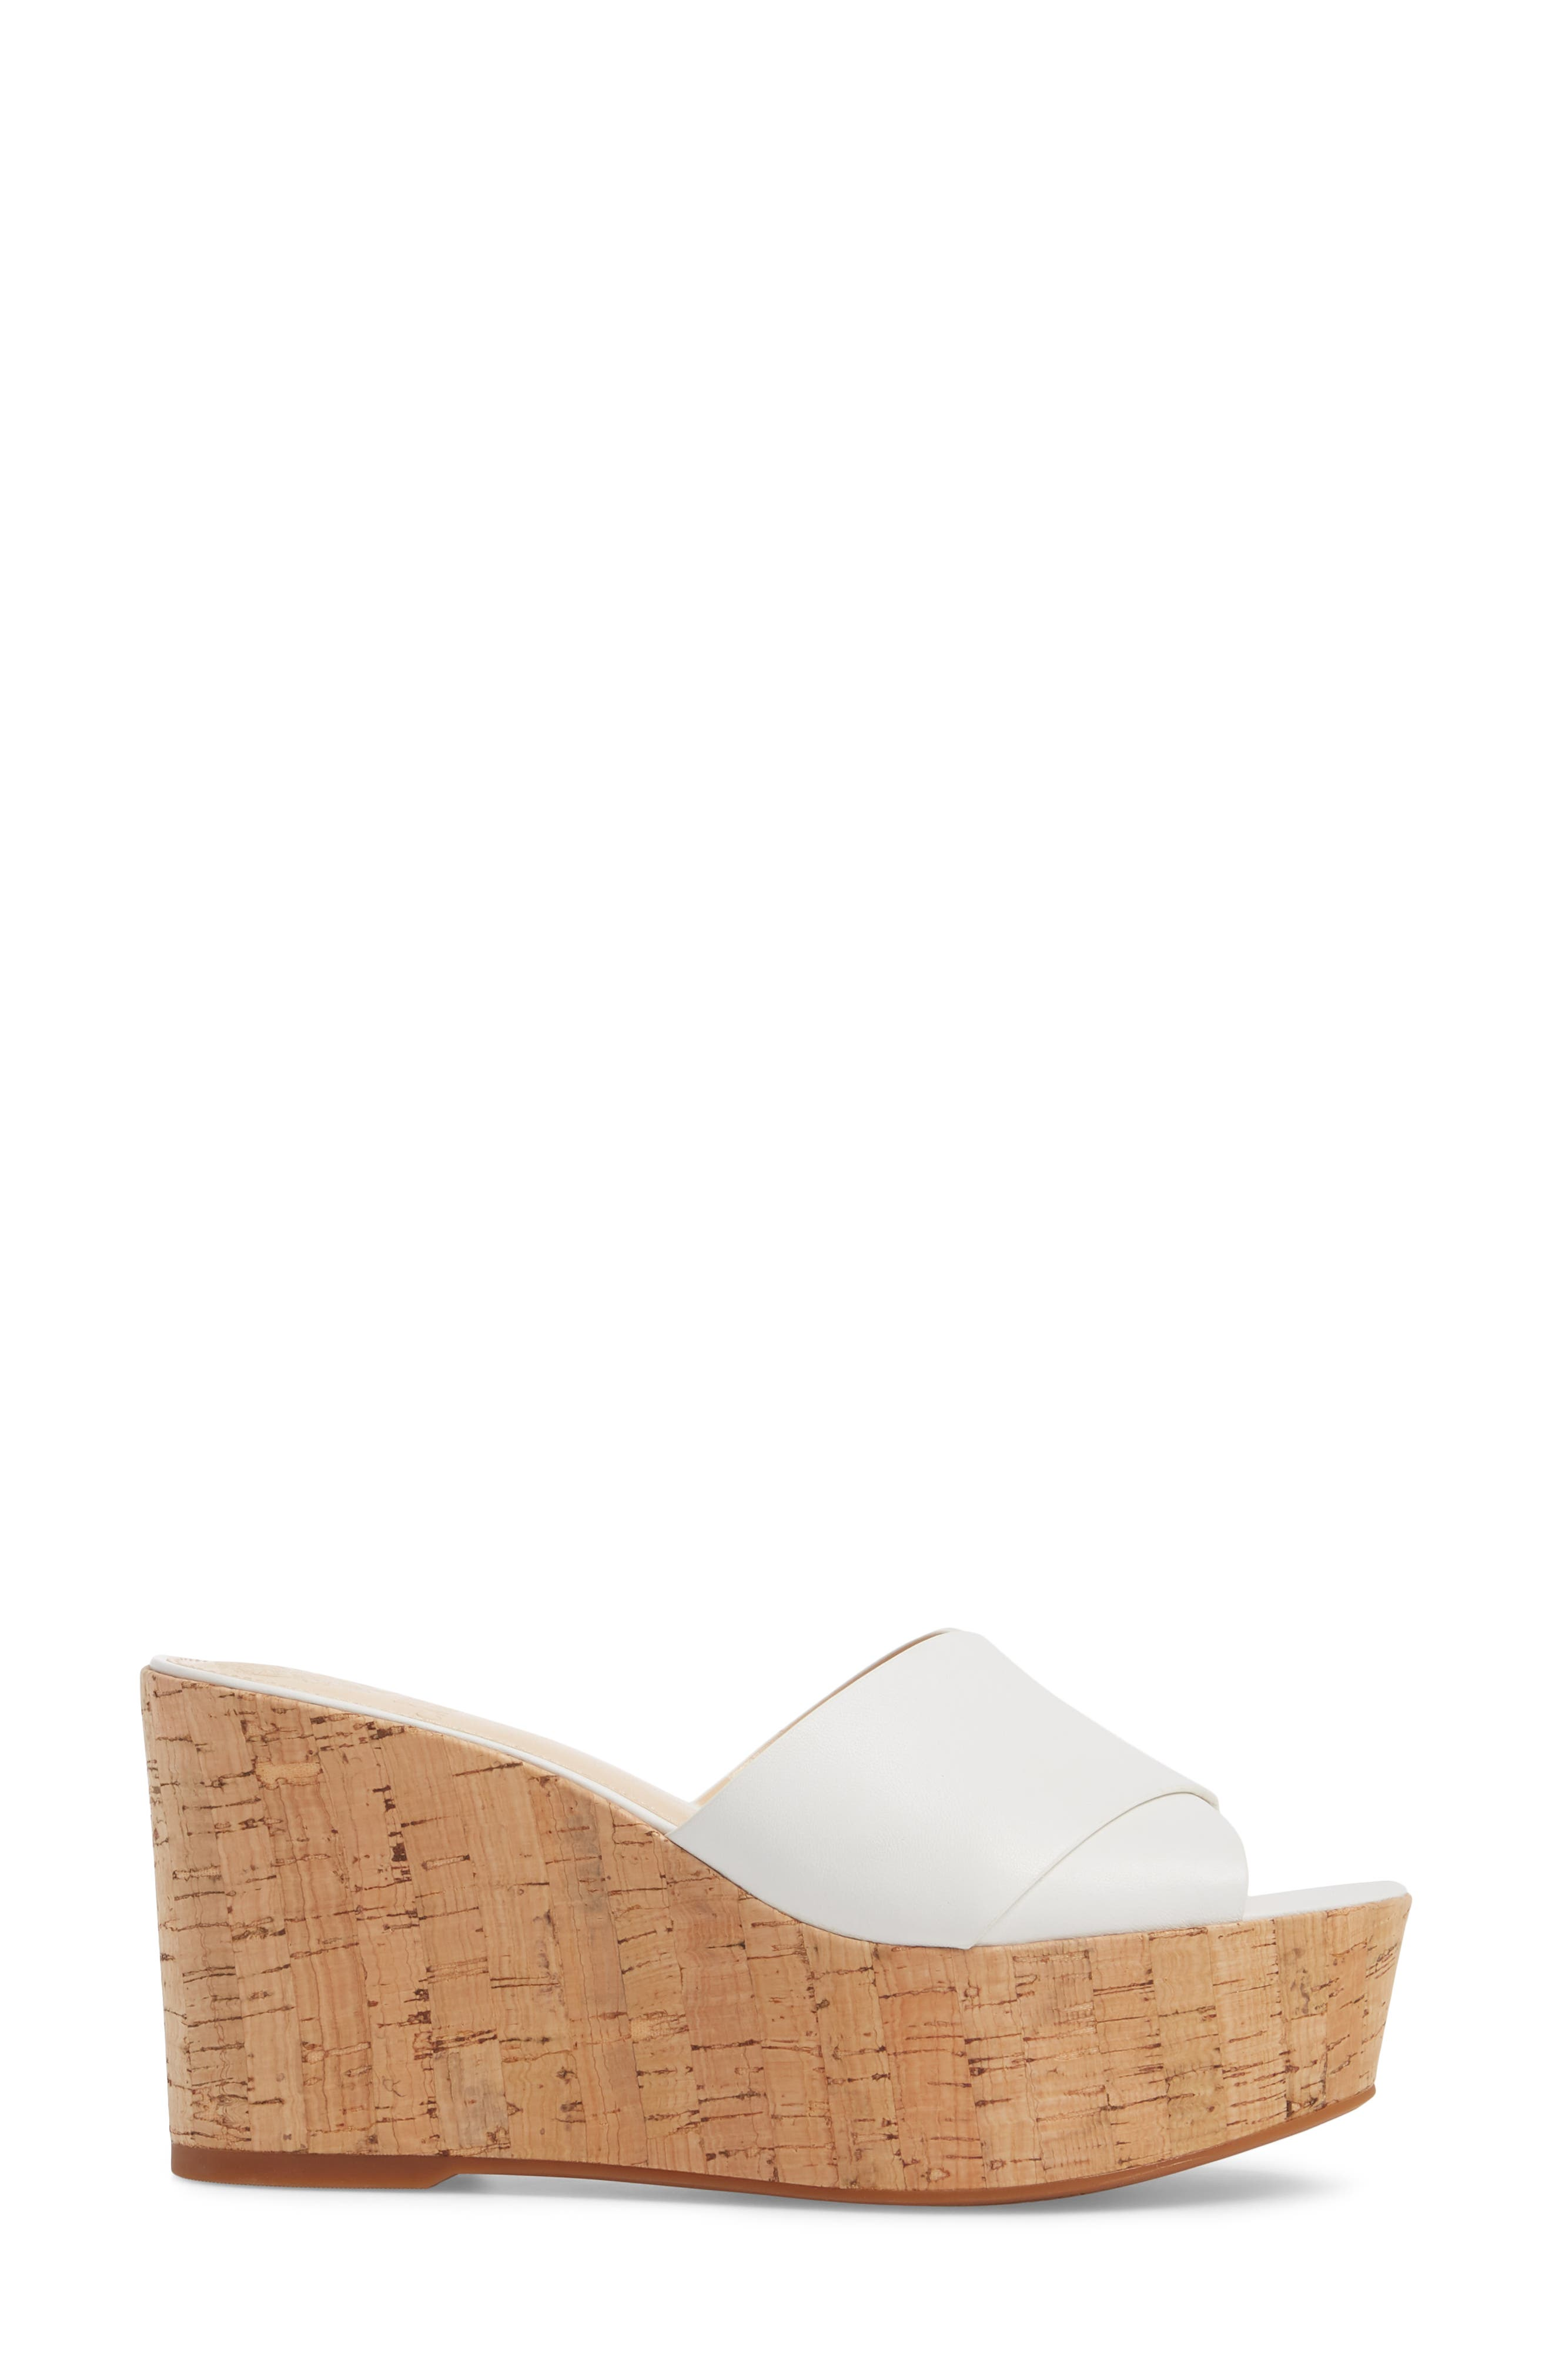 Kessina Platform Wedge Mule,                             Alternate thumbnail 3, color,                             PURE LEATHER